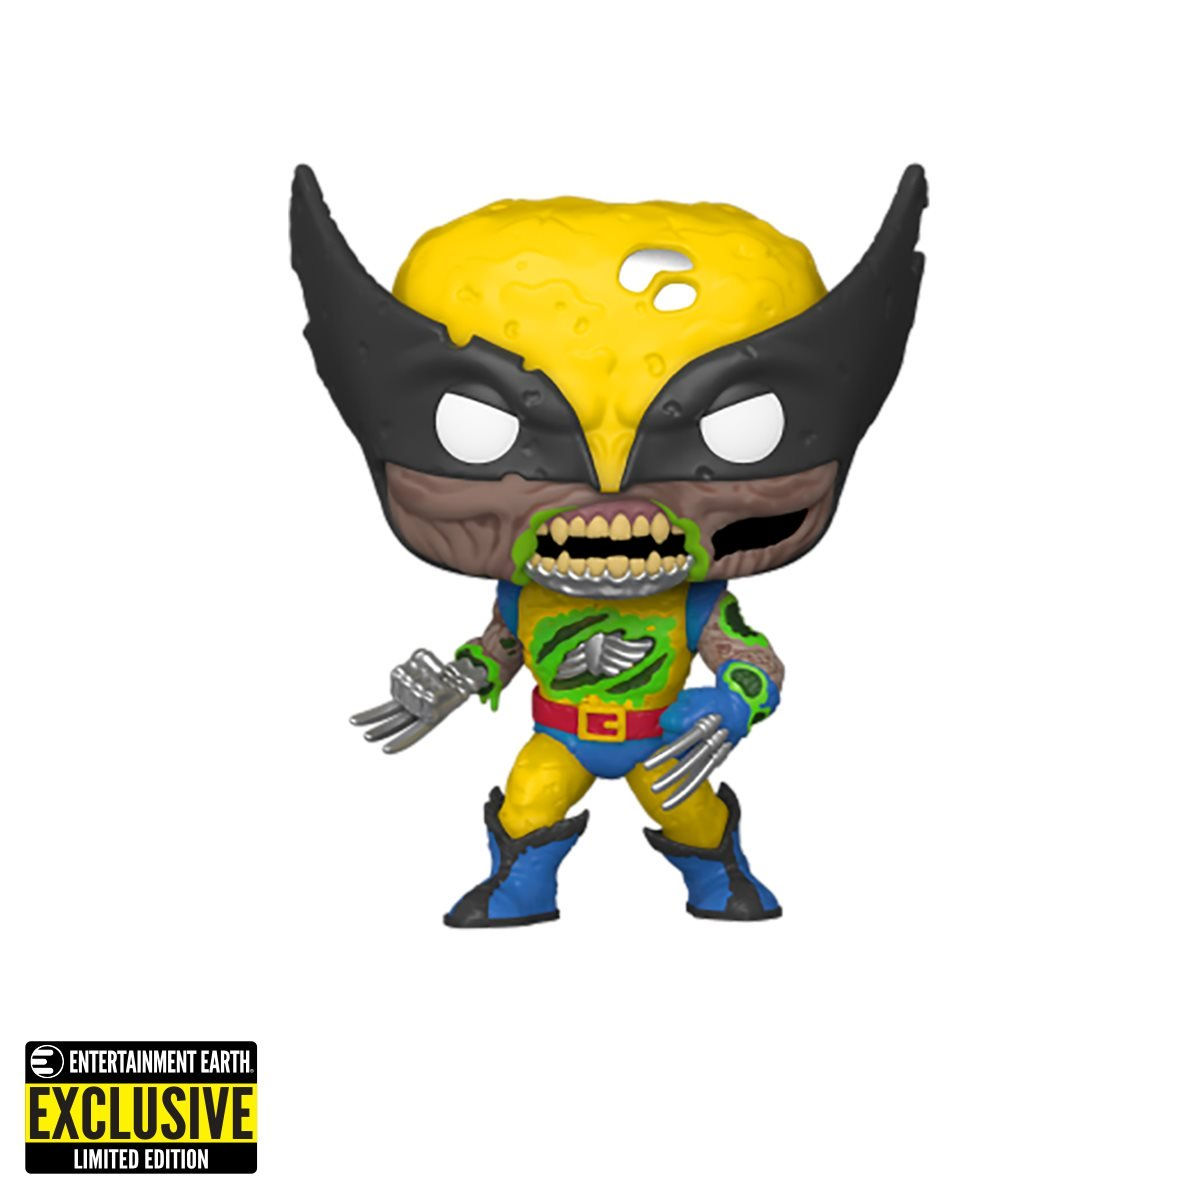 Marvel Zombies Wolverine Glow in the Dark Exclusive (September Preorder)